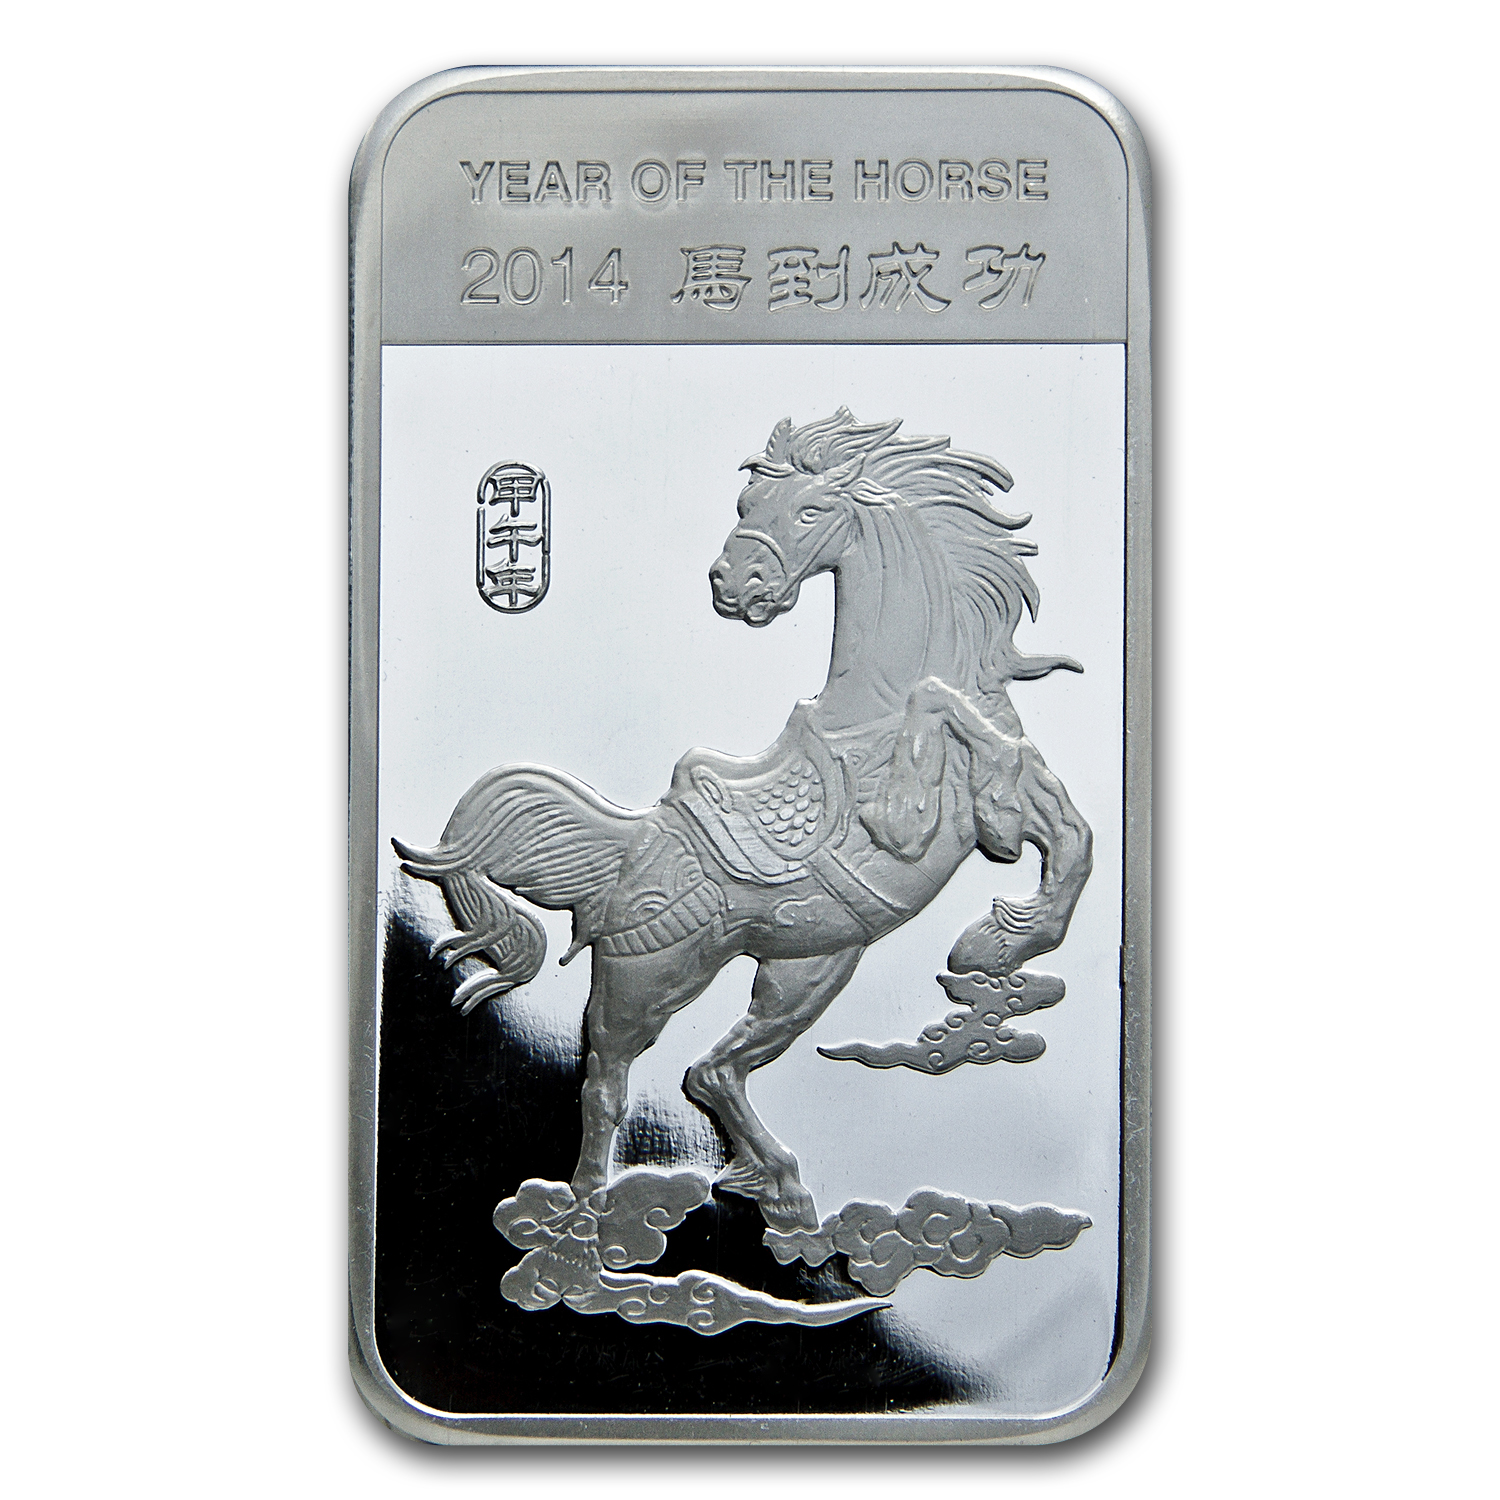 10 oz Silver Bar - APMEX (2014 Year of the Horse)